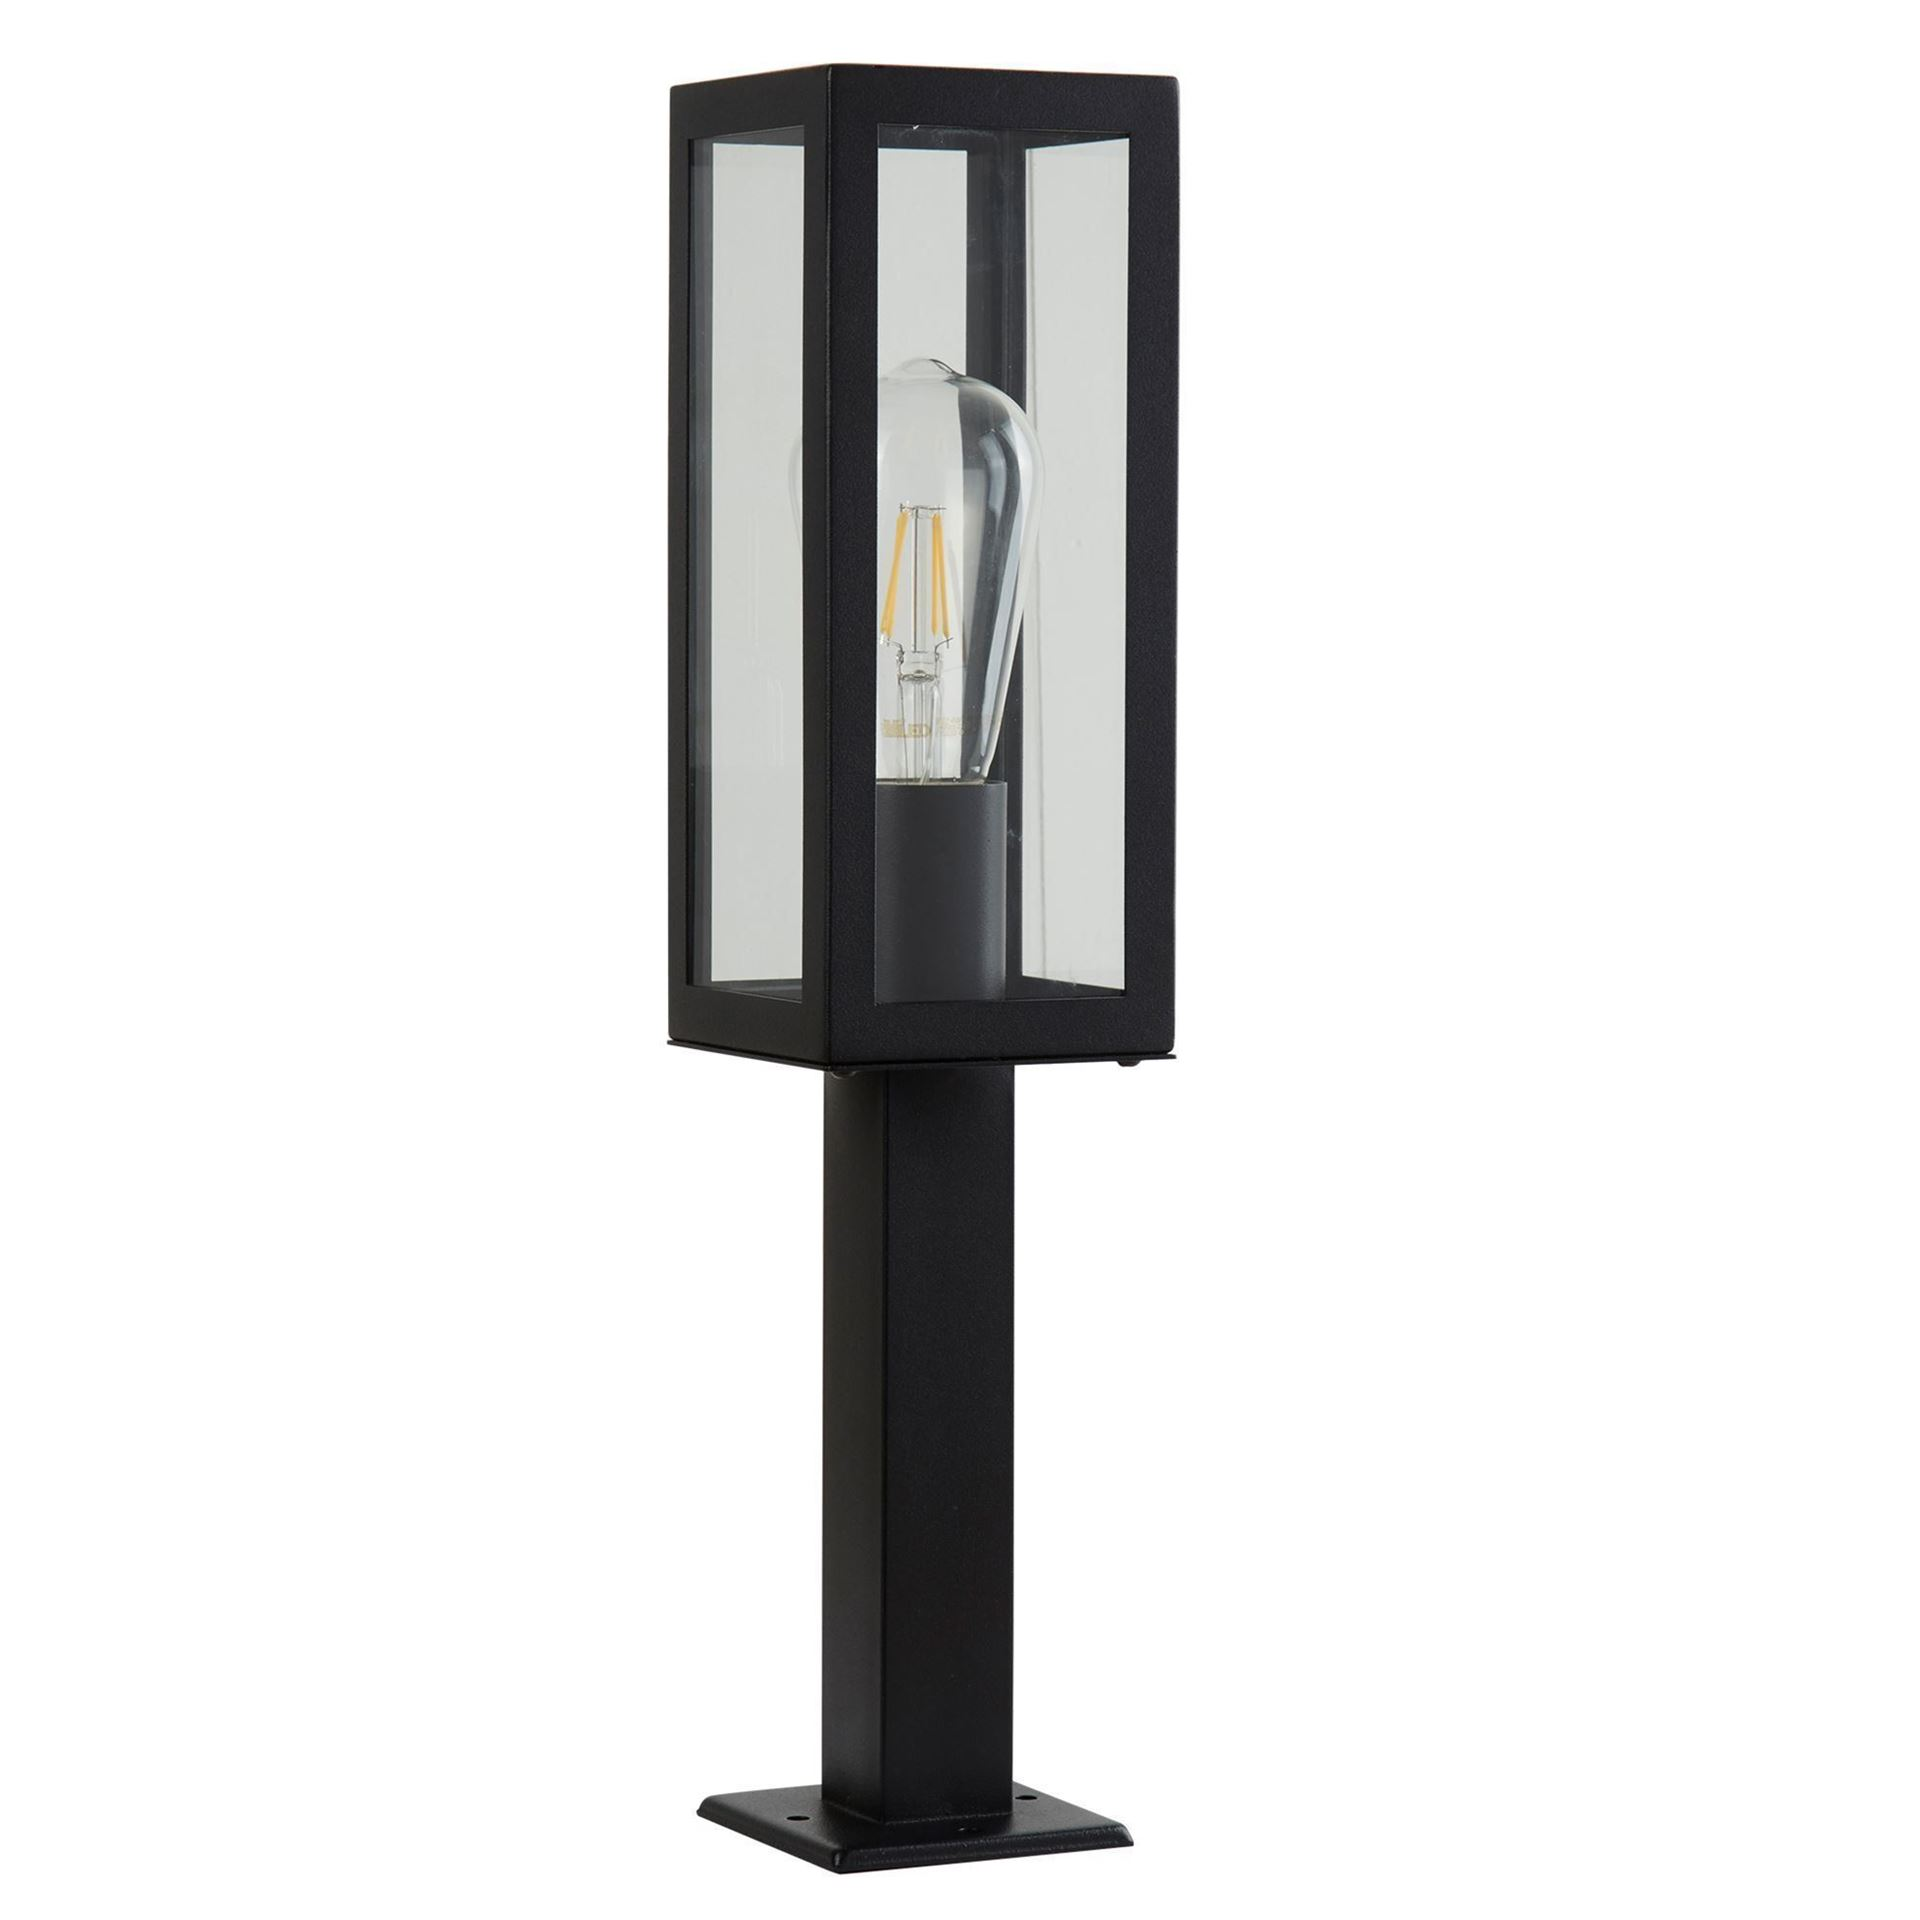 ALUMINIUM, BLACK OUTDOOR 1 LIGHT RECTANGLE HEAD POST LAMP, GLASS PANELS 6441-450BK